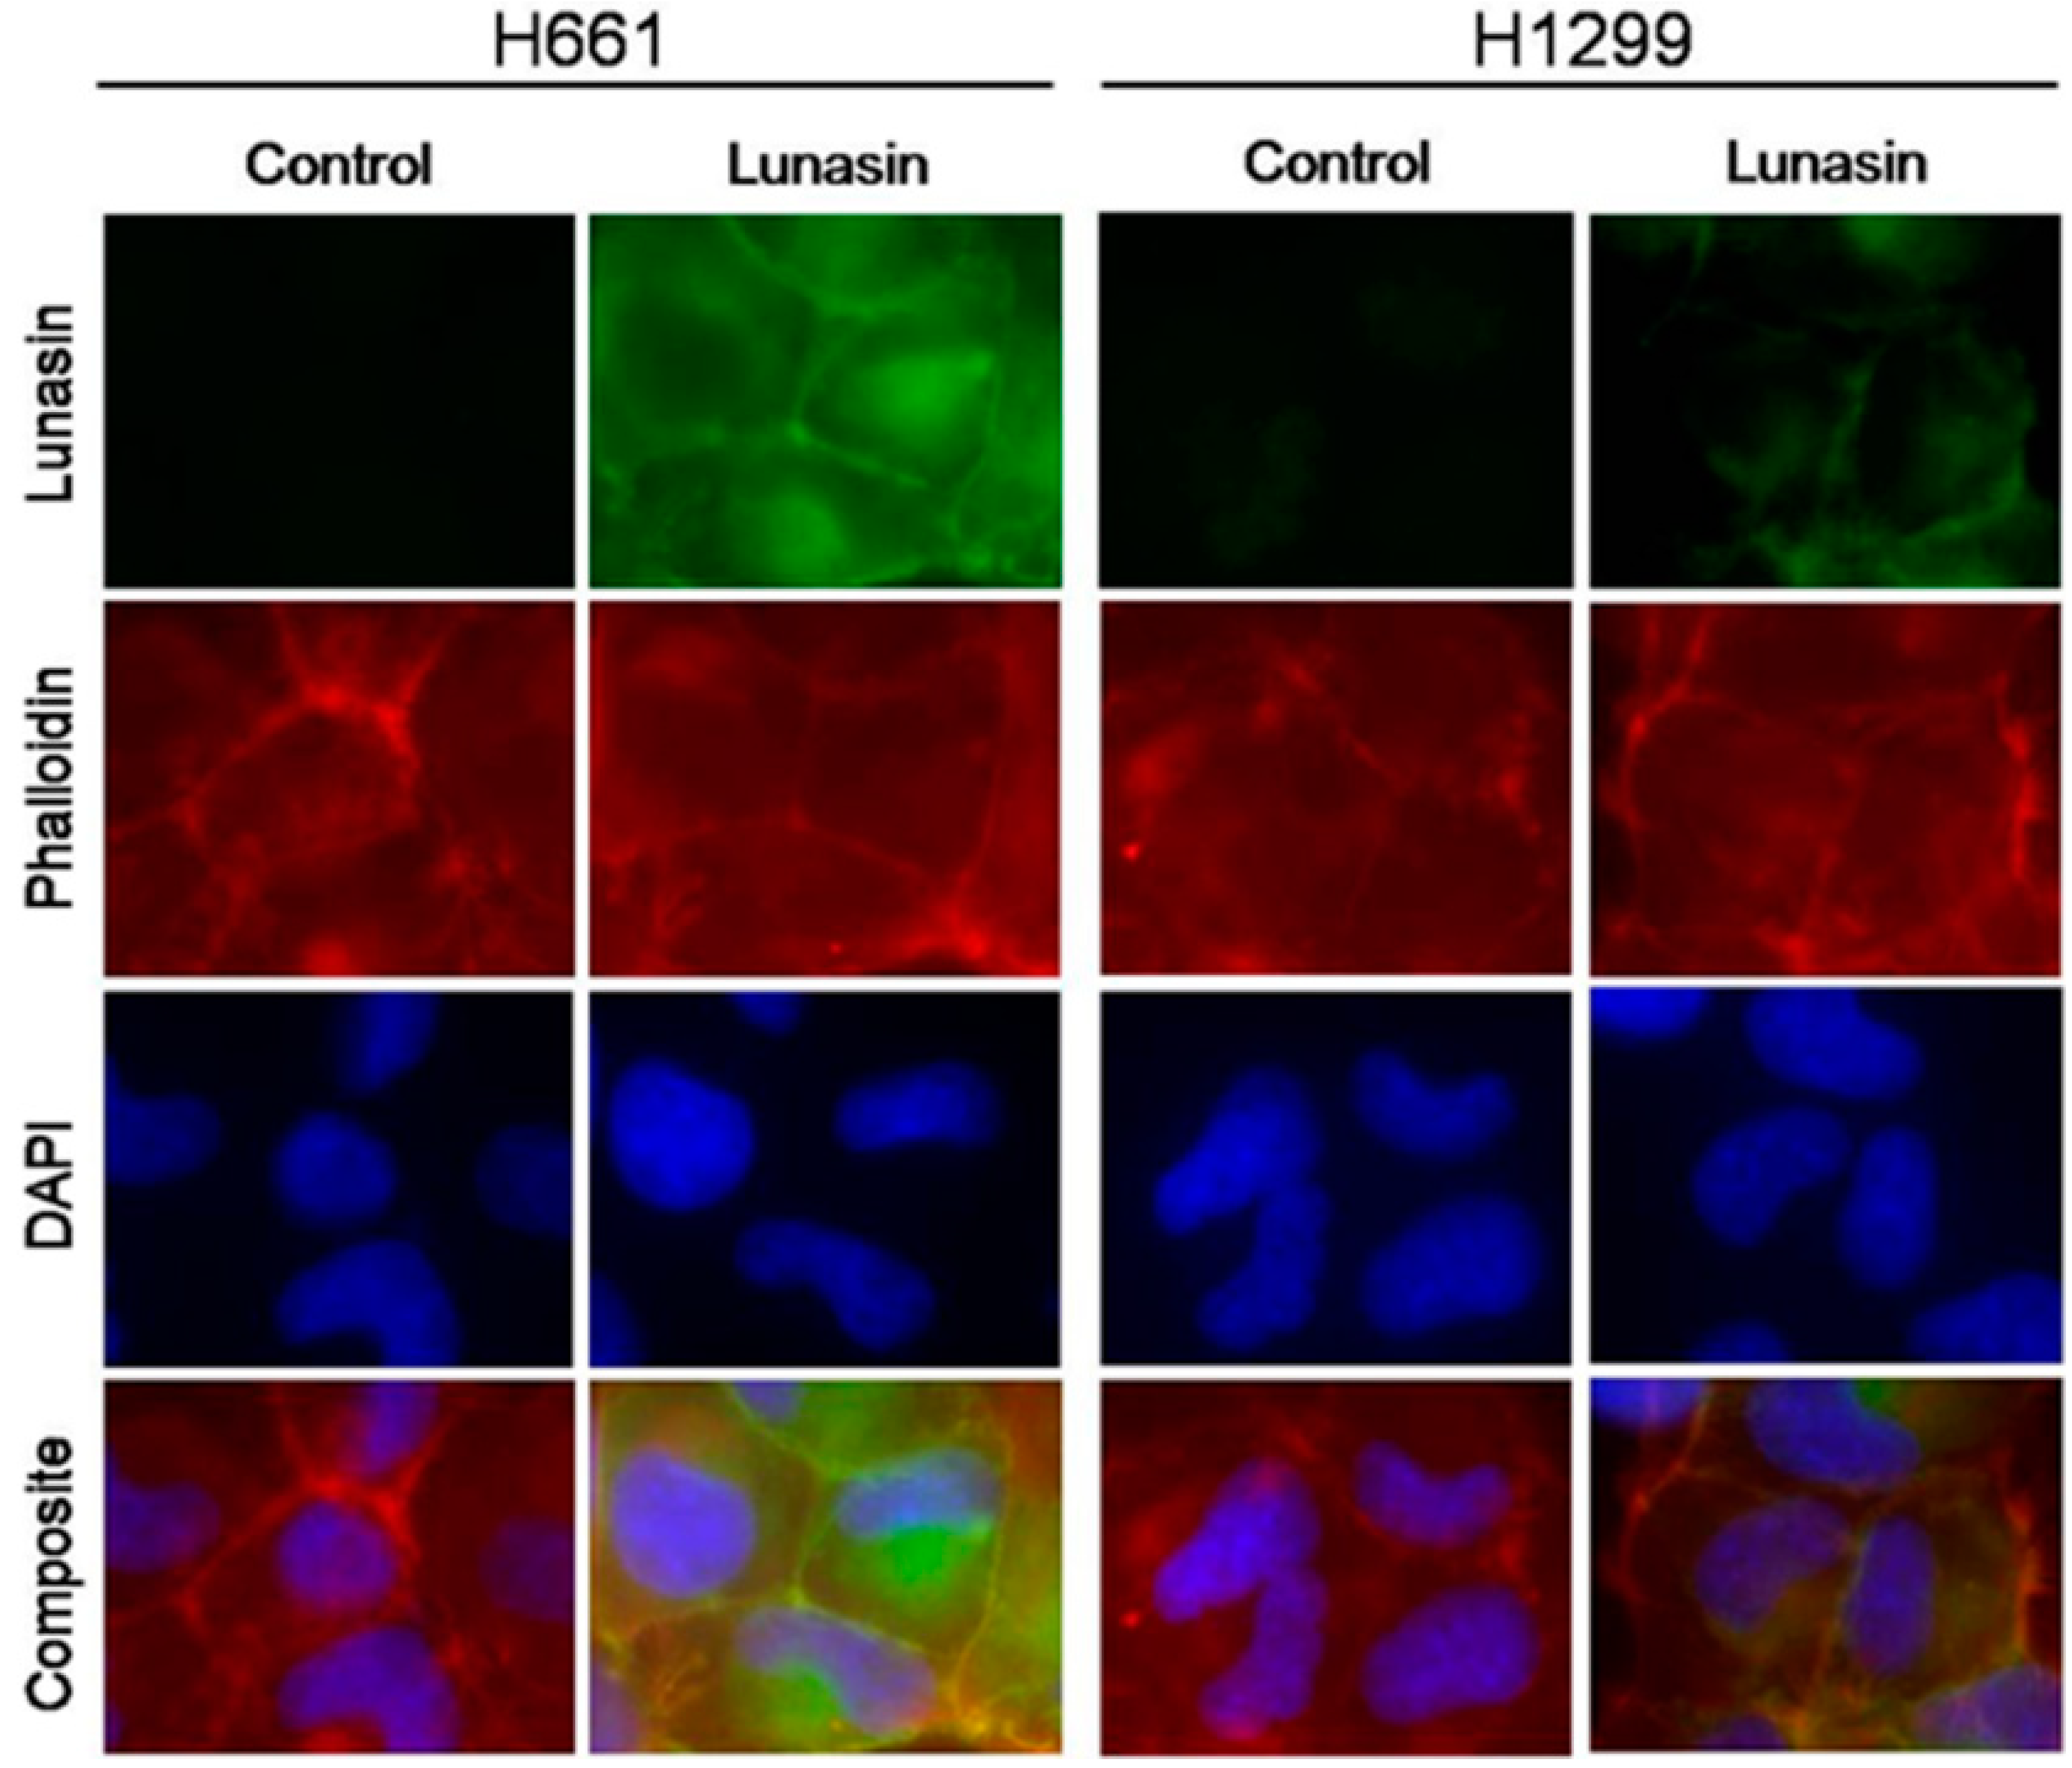 Ijms Free Full Text Lunasin Sensitivity In Non Small Cell Lung Cancer Cells Is Linked To Suppression Of Integrin Signaling And Changes In Histone Acetylation Html